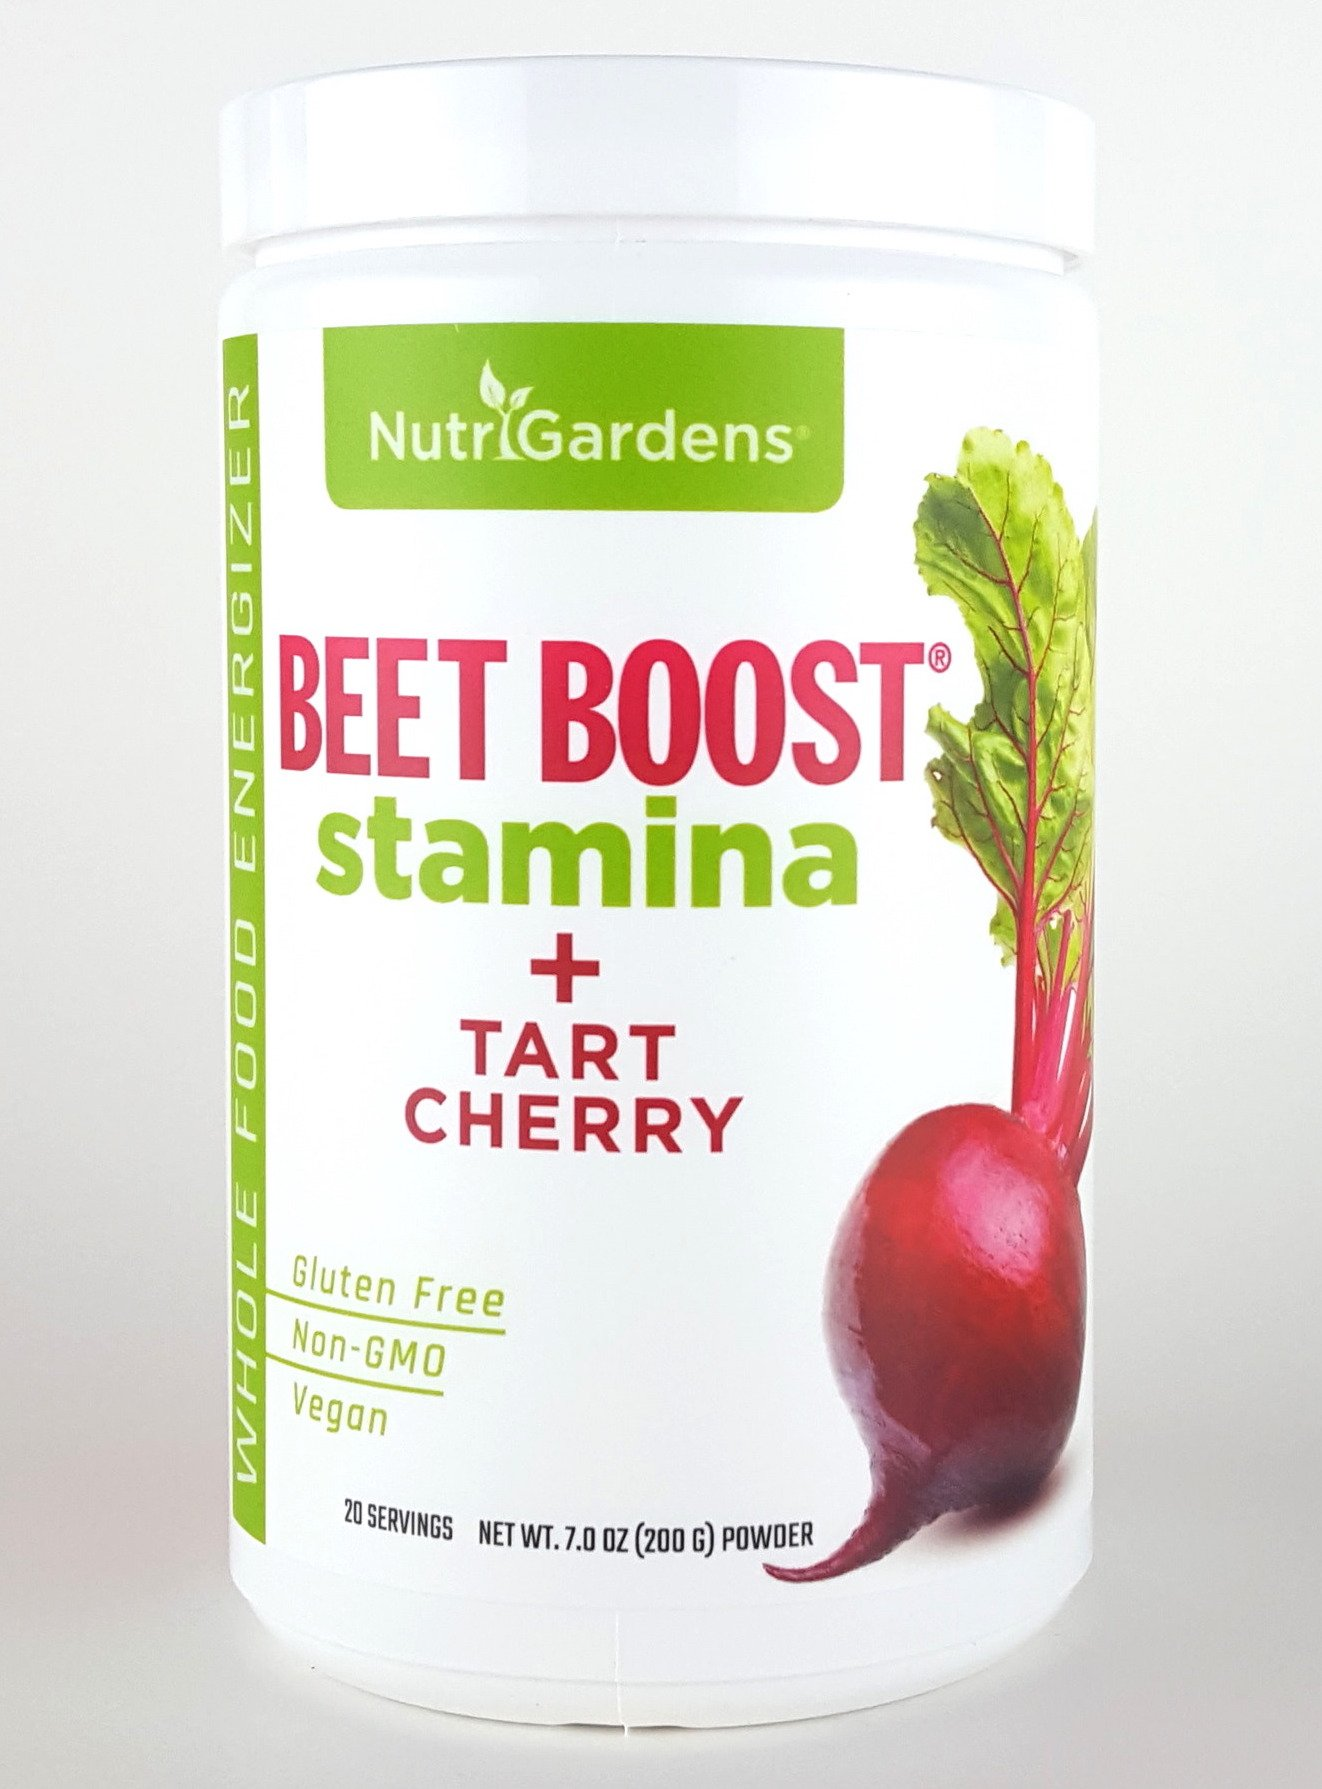 BEET BOOST® for Stamina by NutriGardens - Increase Endurance & Circulation – Concentrated Beets Blended with Tart Cherry for Nitric Oxide BOOST - Reduce Inflammation in Joints & Muscles (7 ounces jar) by Beet Boost (Image #1)